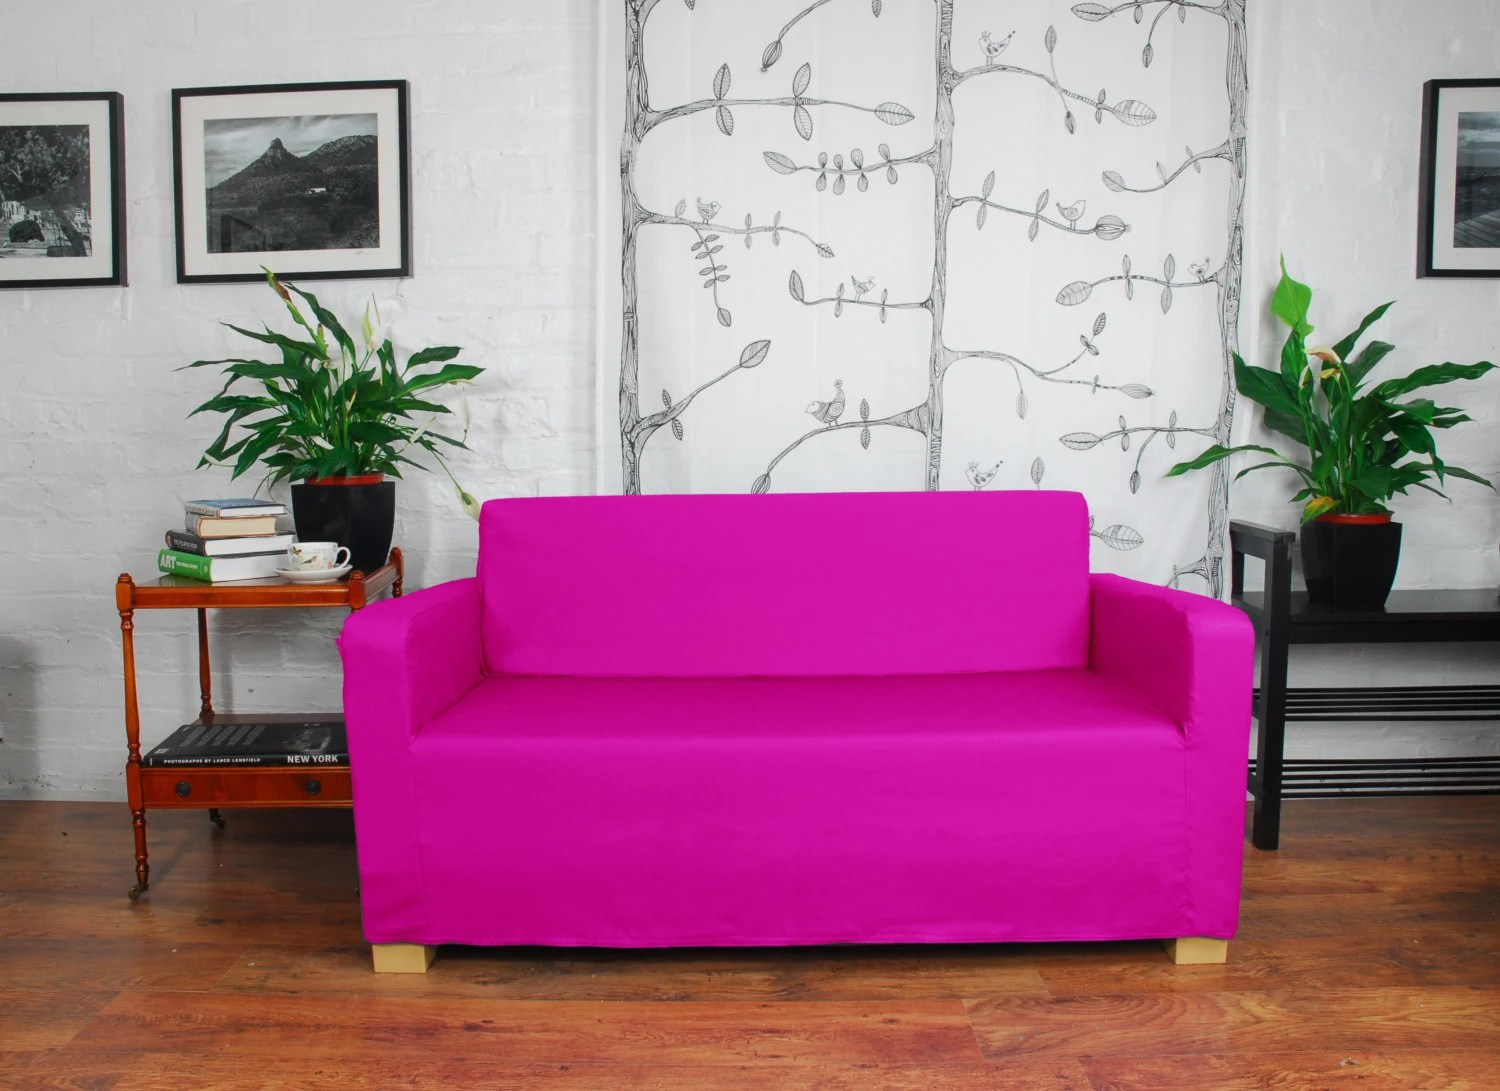 Ikea Solsta Bettsofa Deutschland Slip Cover To Fit The Ikea Ullvi Sofa Bed 20 Colours Available